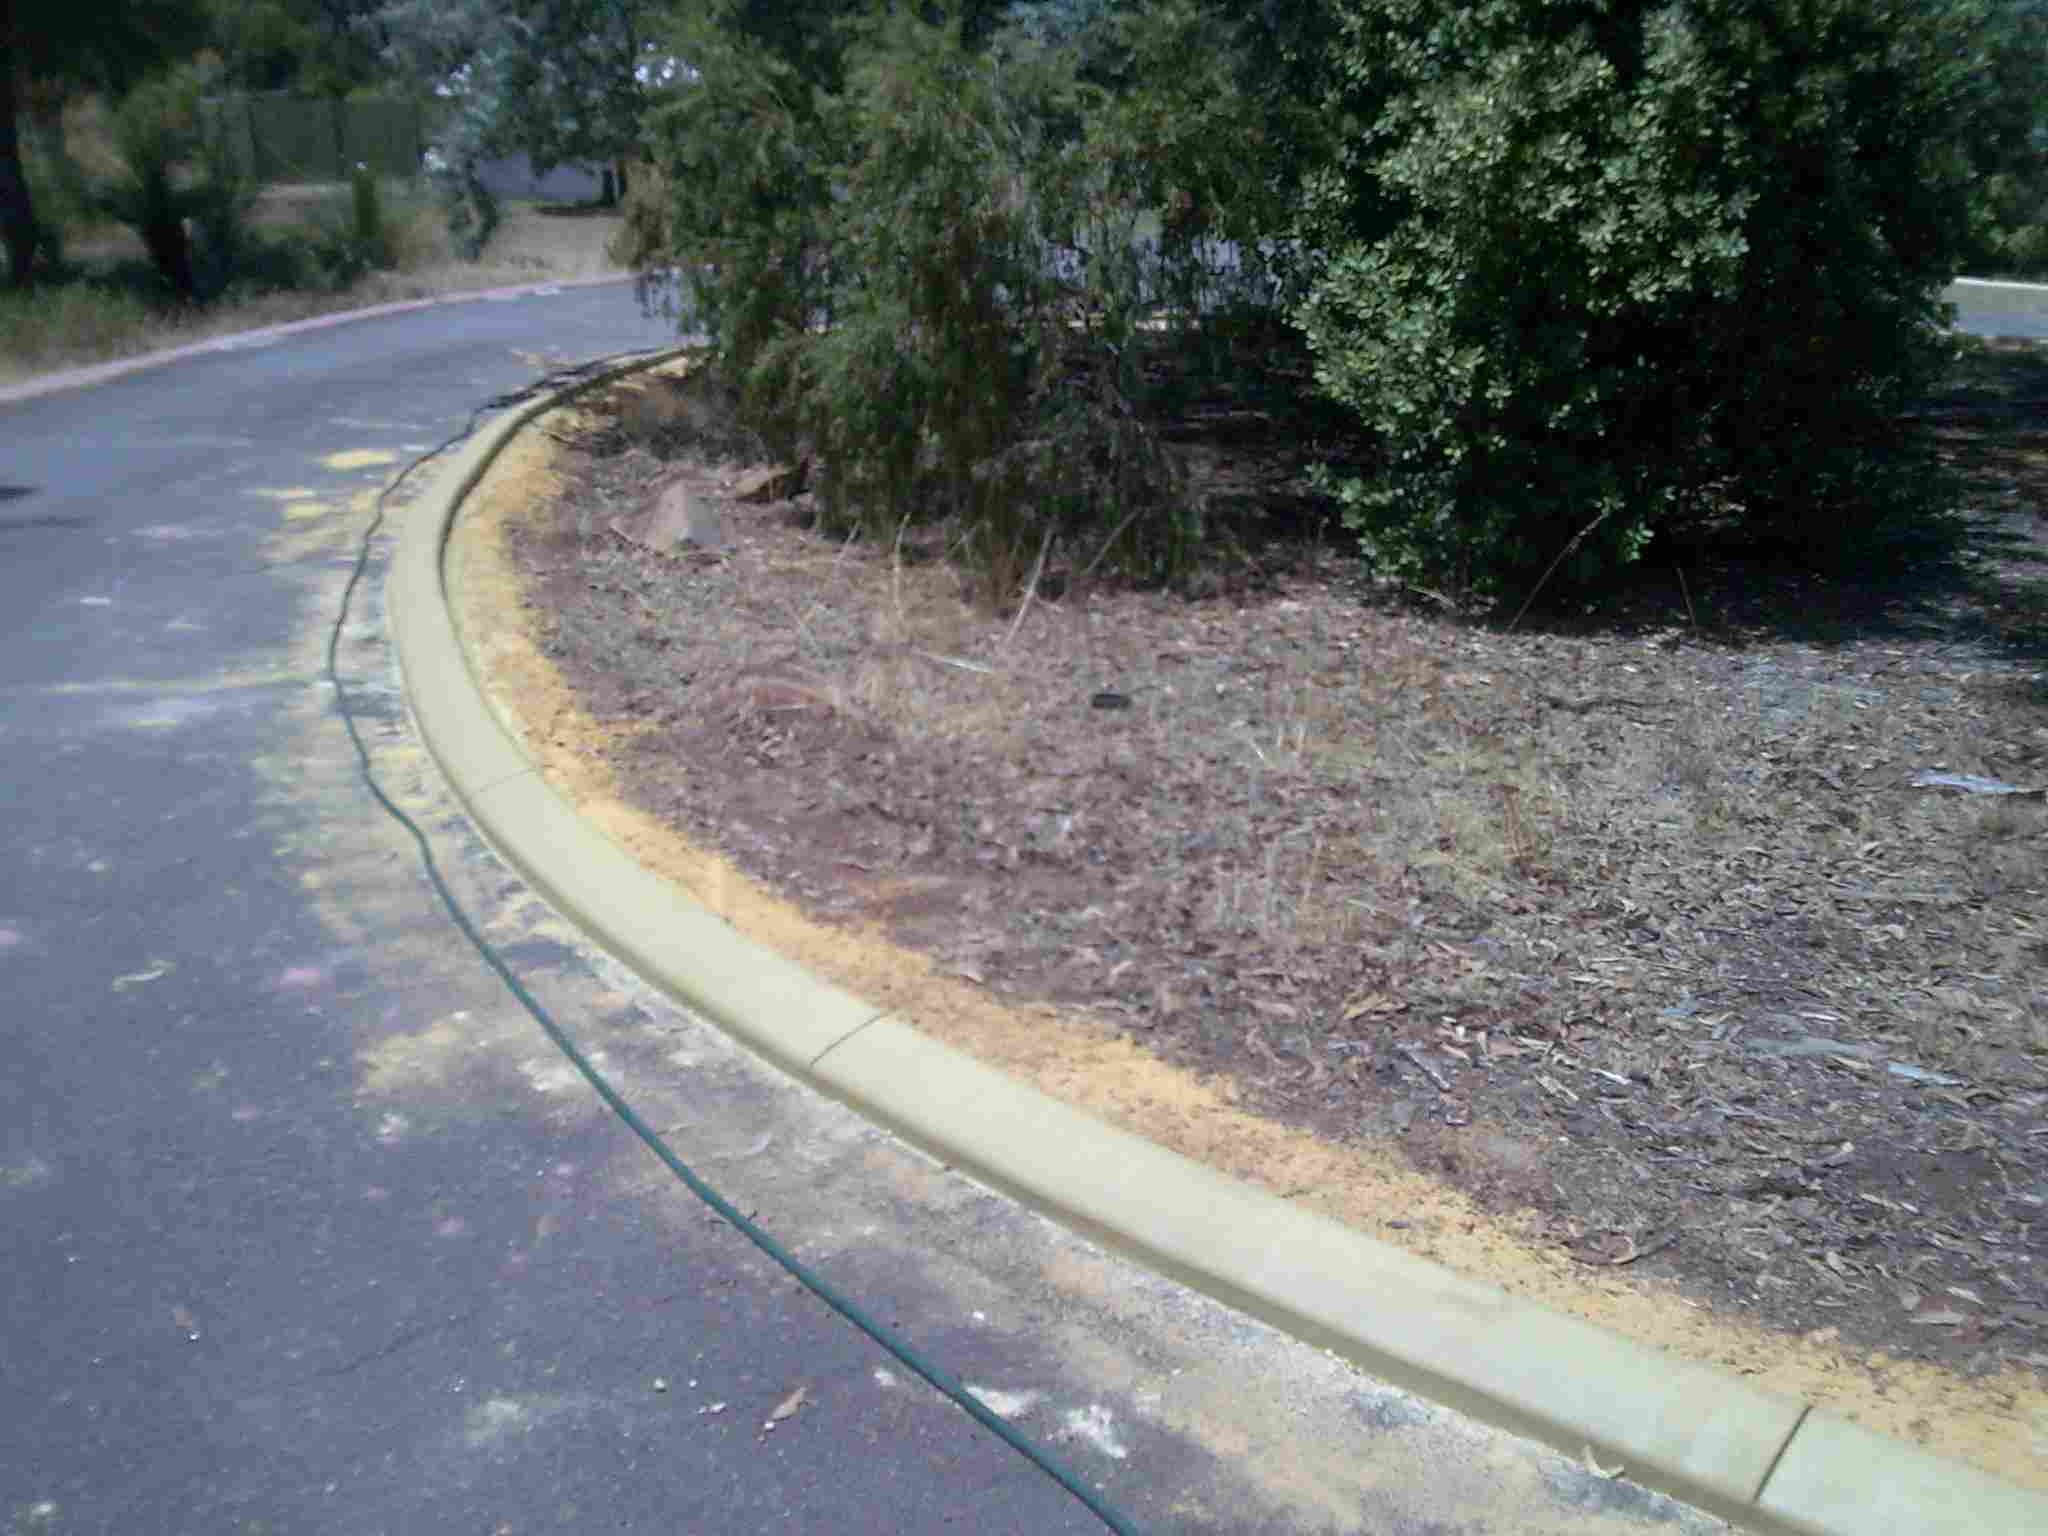 Kerbing sloping edge